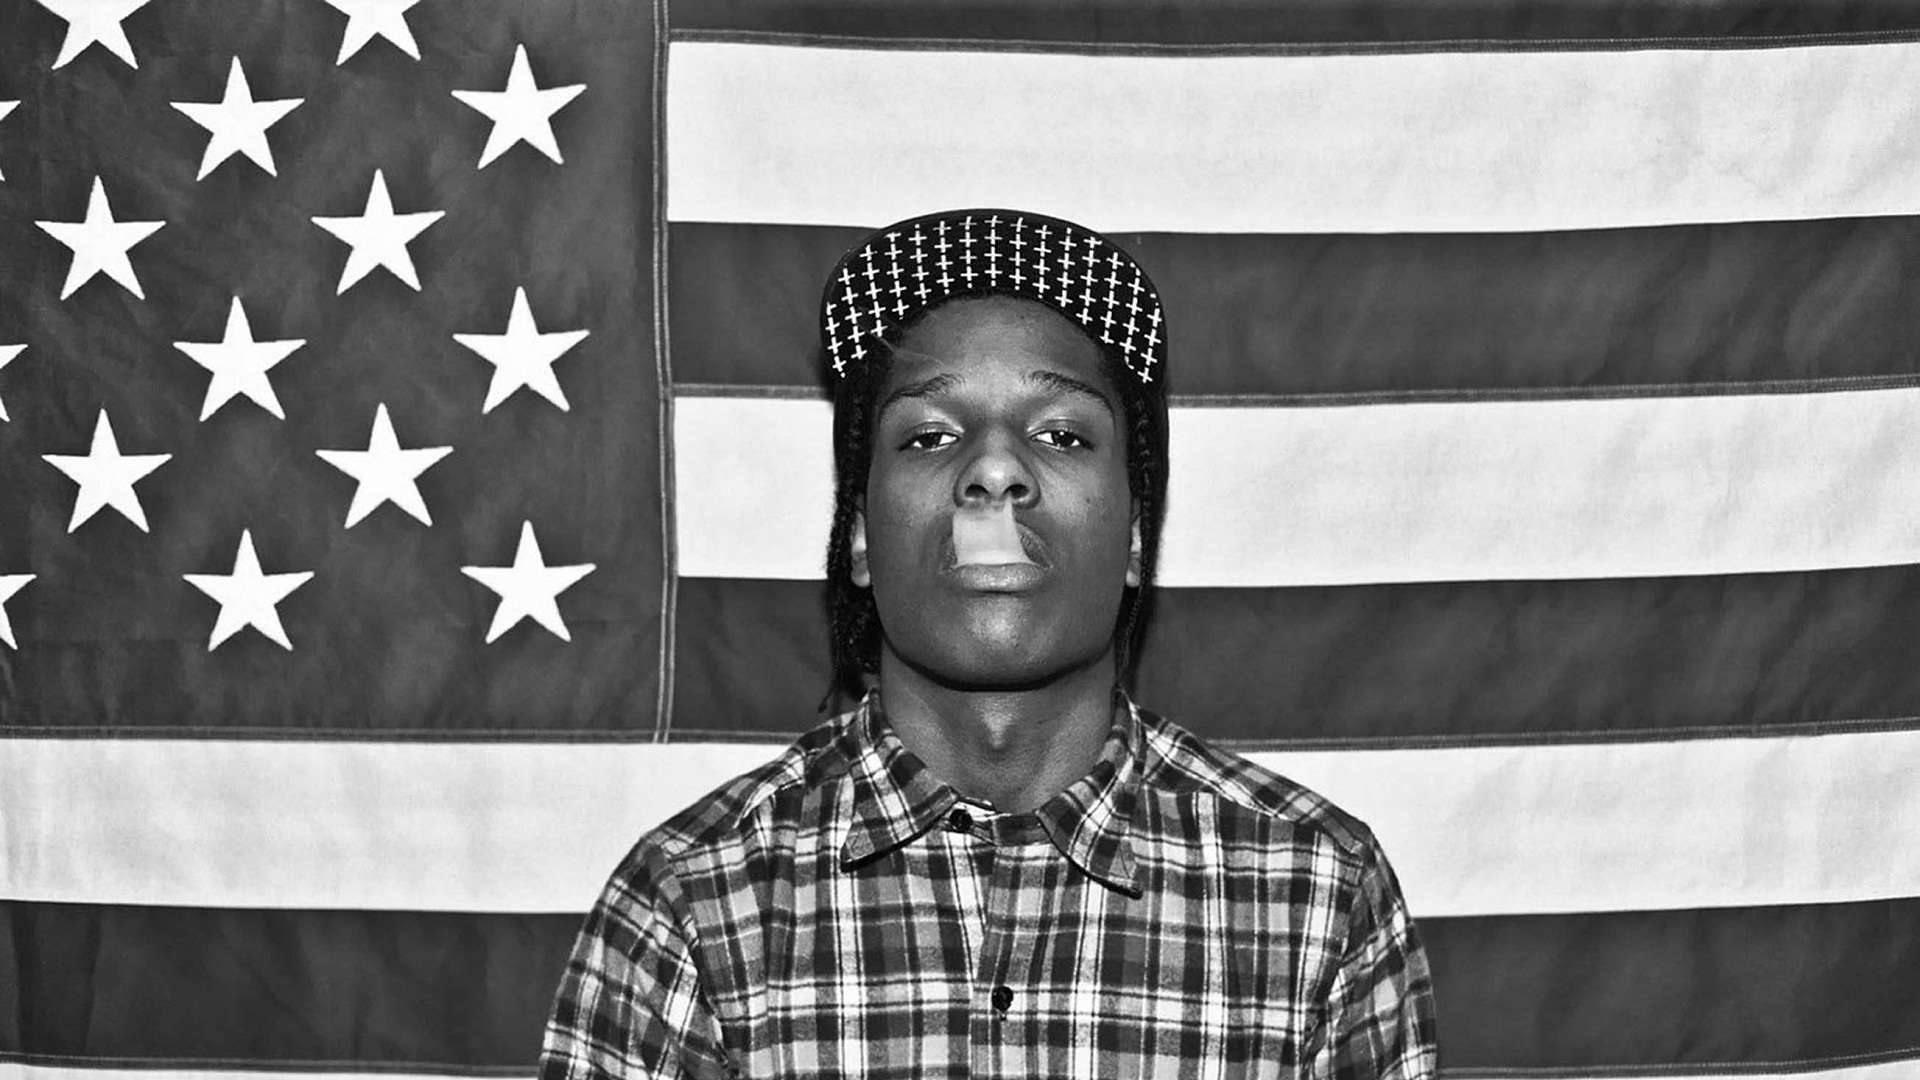 Wallpaper Smoke Rocky American Rap Hd Wallpaper 1080p Upload at July 1920x1080